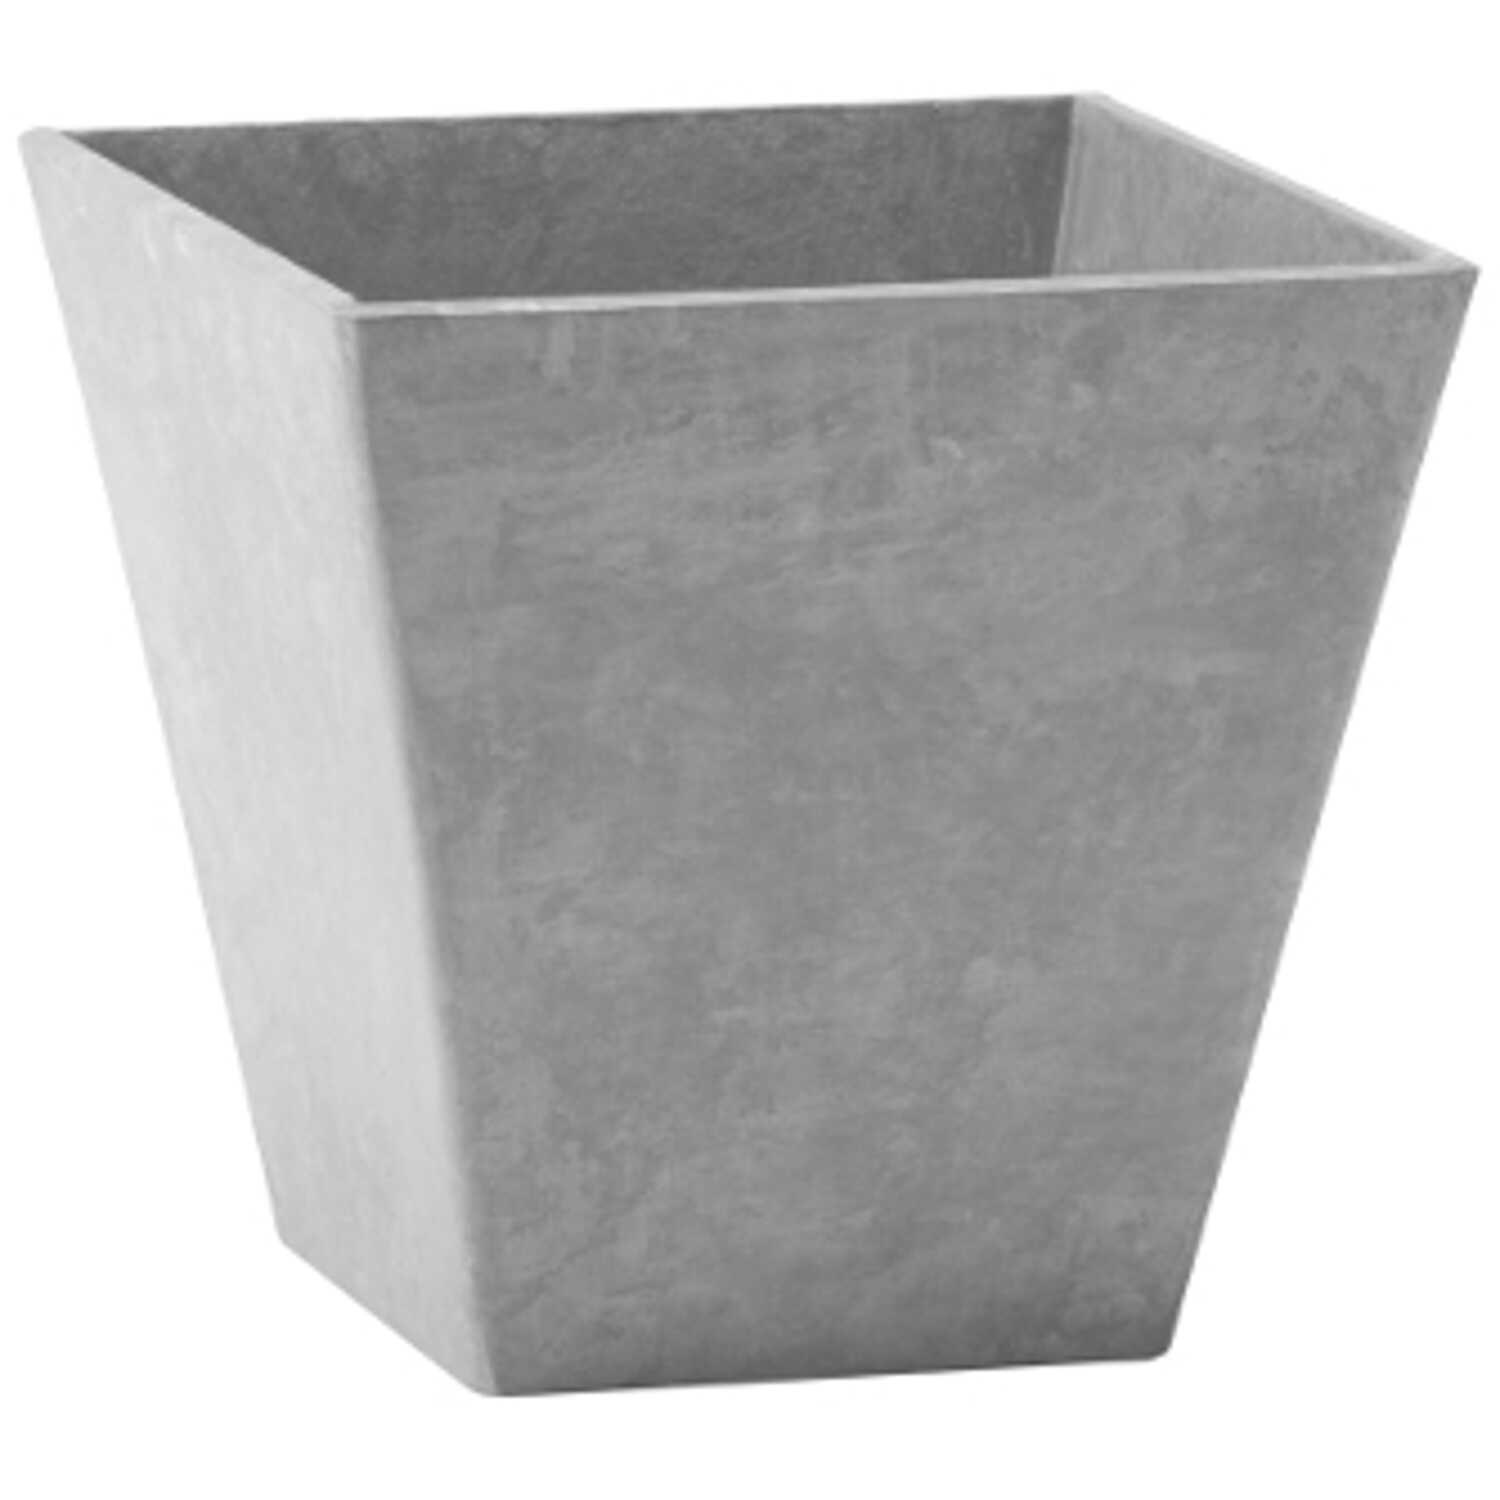 Novelty  Artstone  8 in. H x 7.81 in. W Gray  Resin/Stone Powder  Ella  Flower Pot